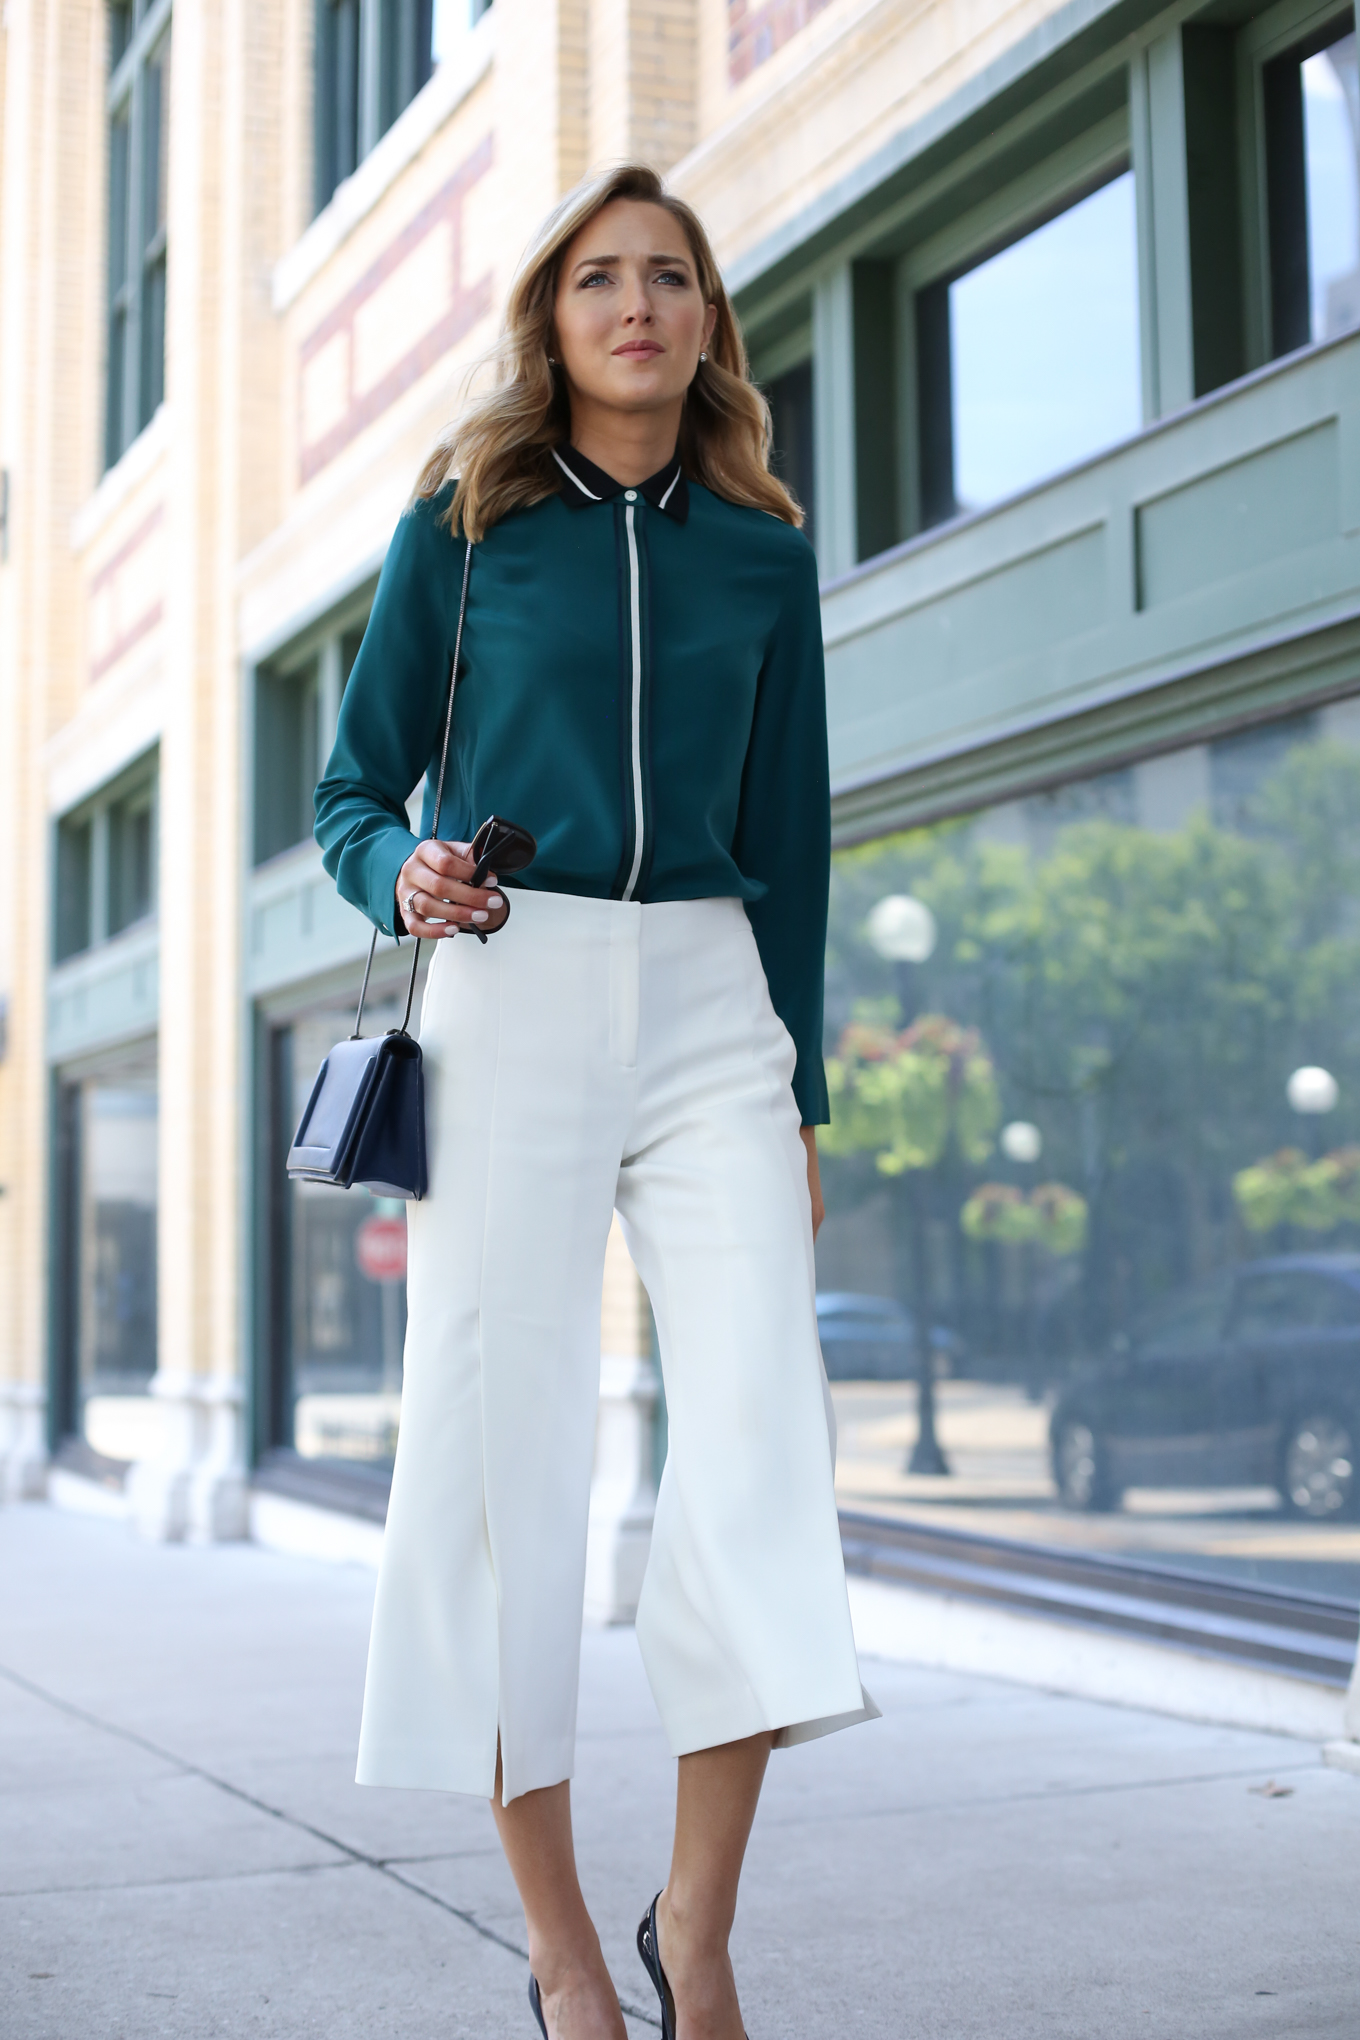 rag-and-bone-emerald-green-silk-collared-shirt-black-white-accents-white-ivory-culottes-work-wear-office-professional-business-style-fashion-blog-mary-orton-memorandum-31